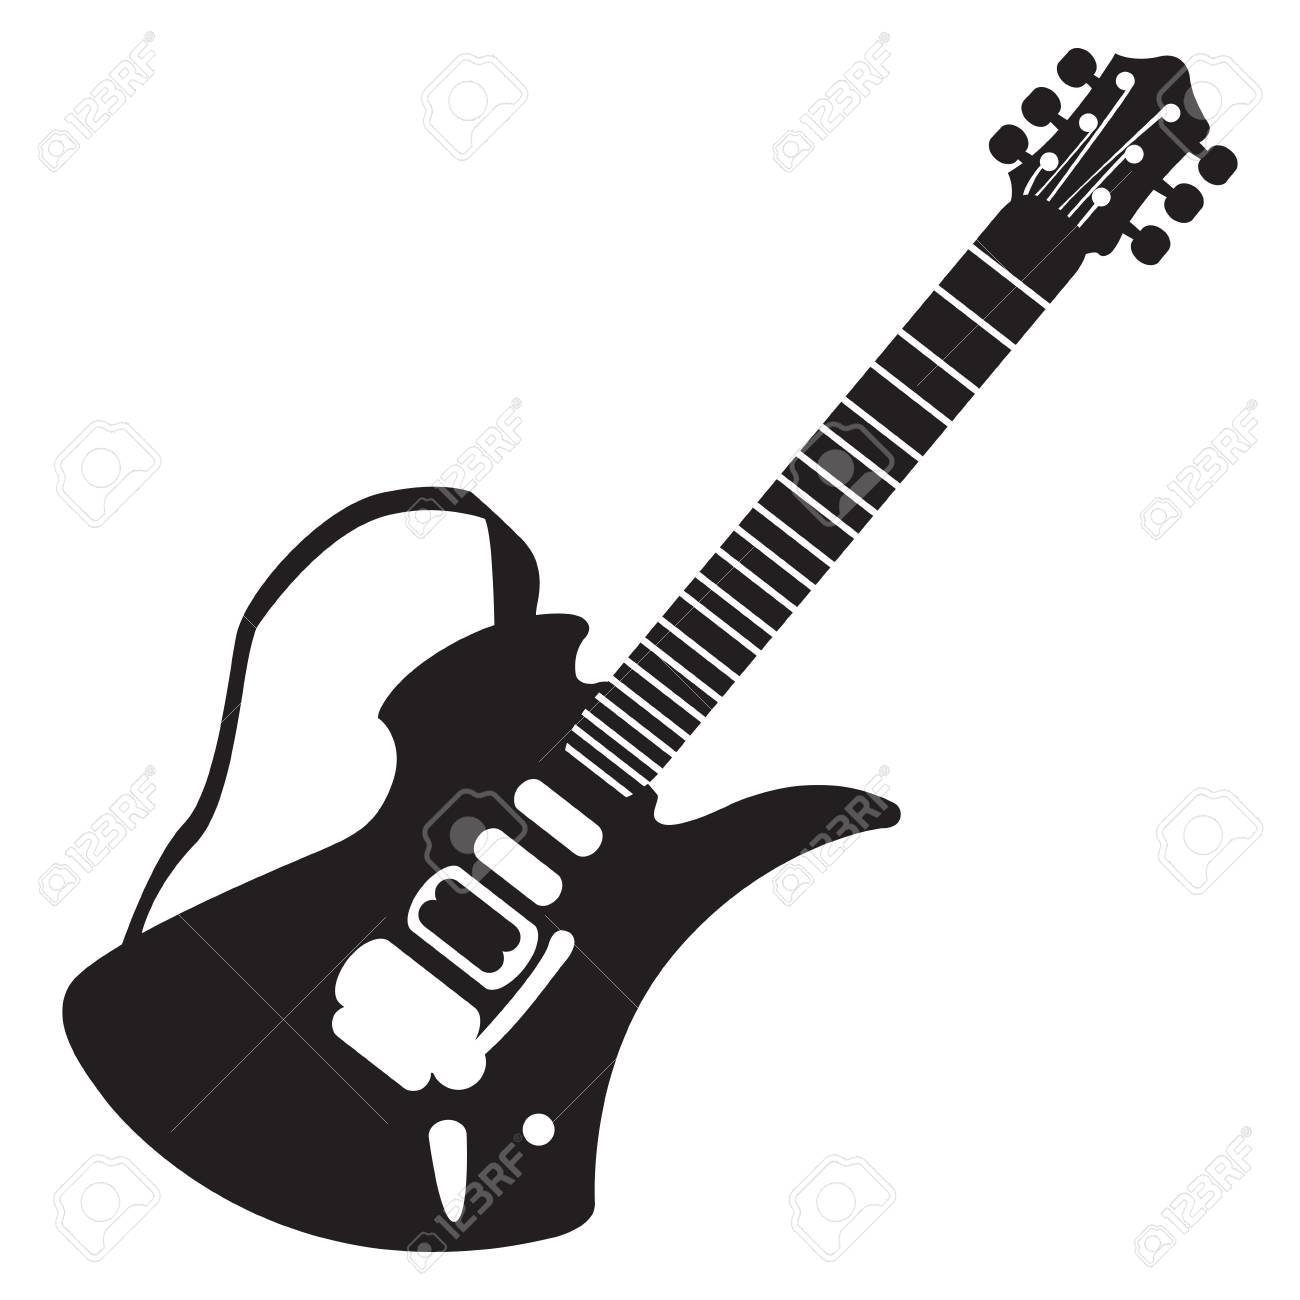 isolated silhouette of an electric guitar vector illustration rh 123rf com electric guitar vector images electric guitar vector outline